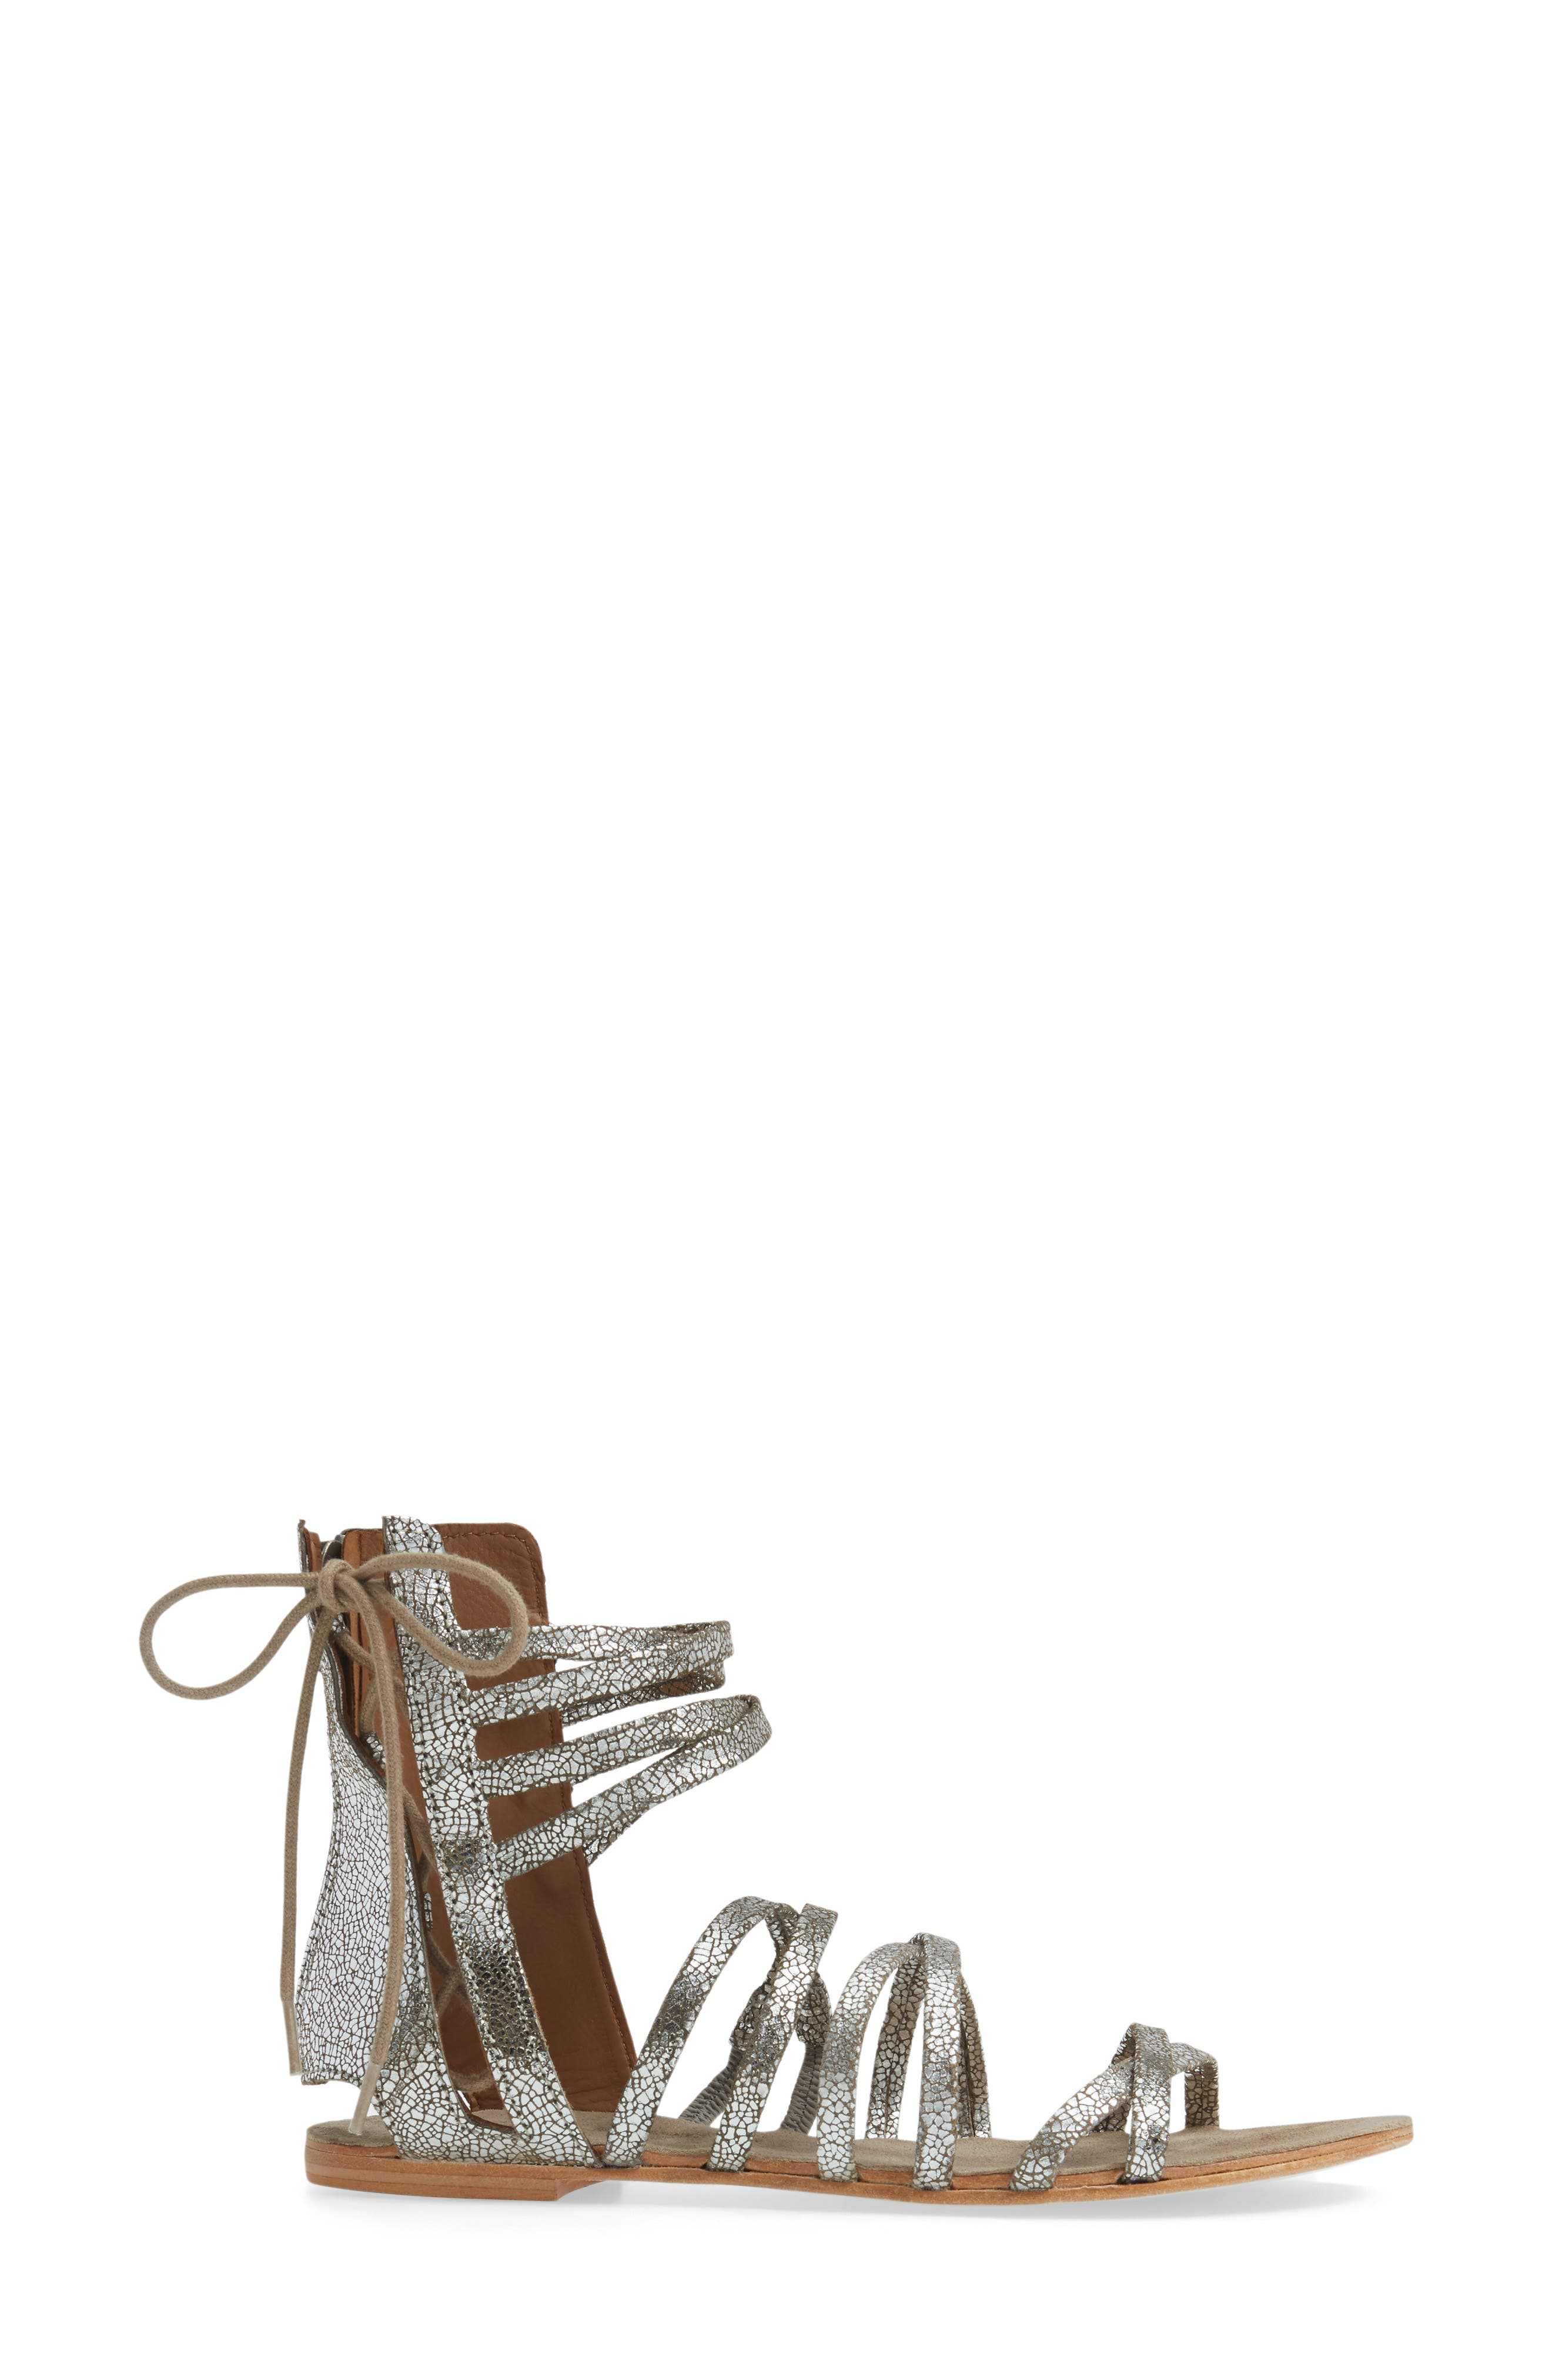 Alternate Image 3  - Free People Juliette Gladiator Sandal (Women)